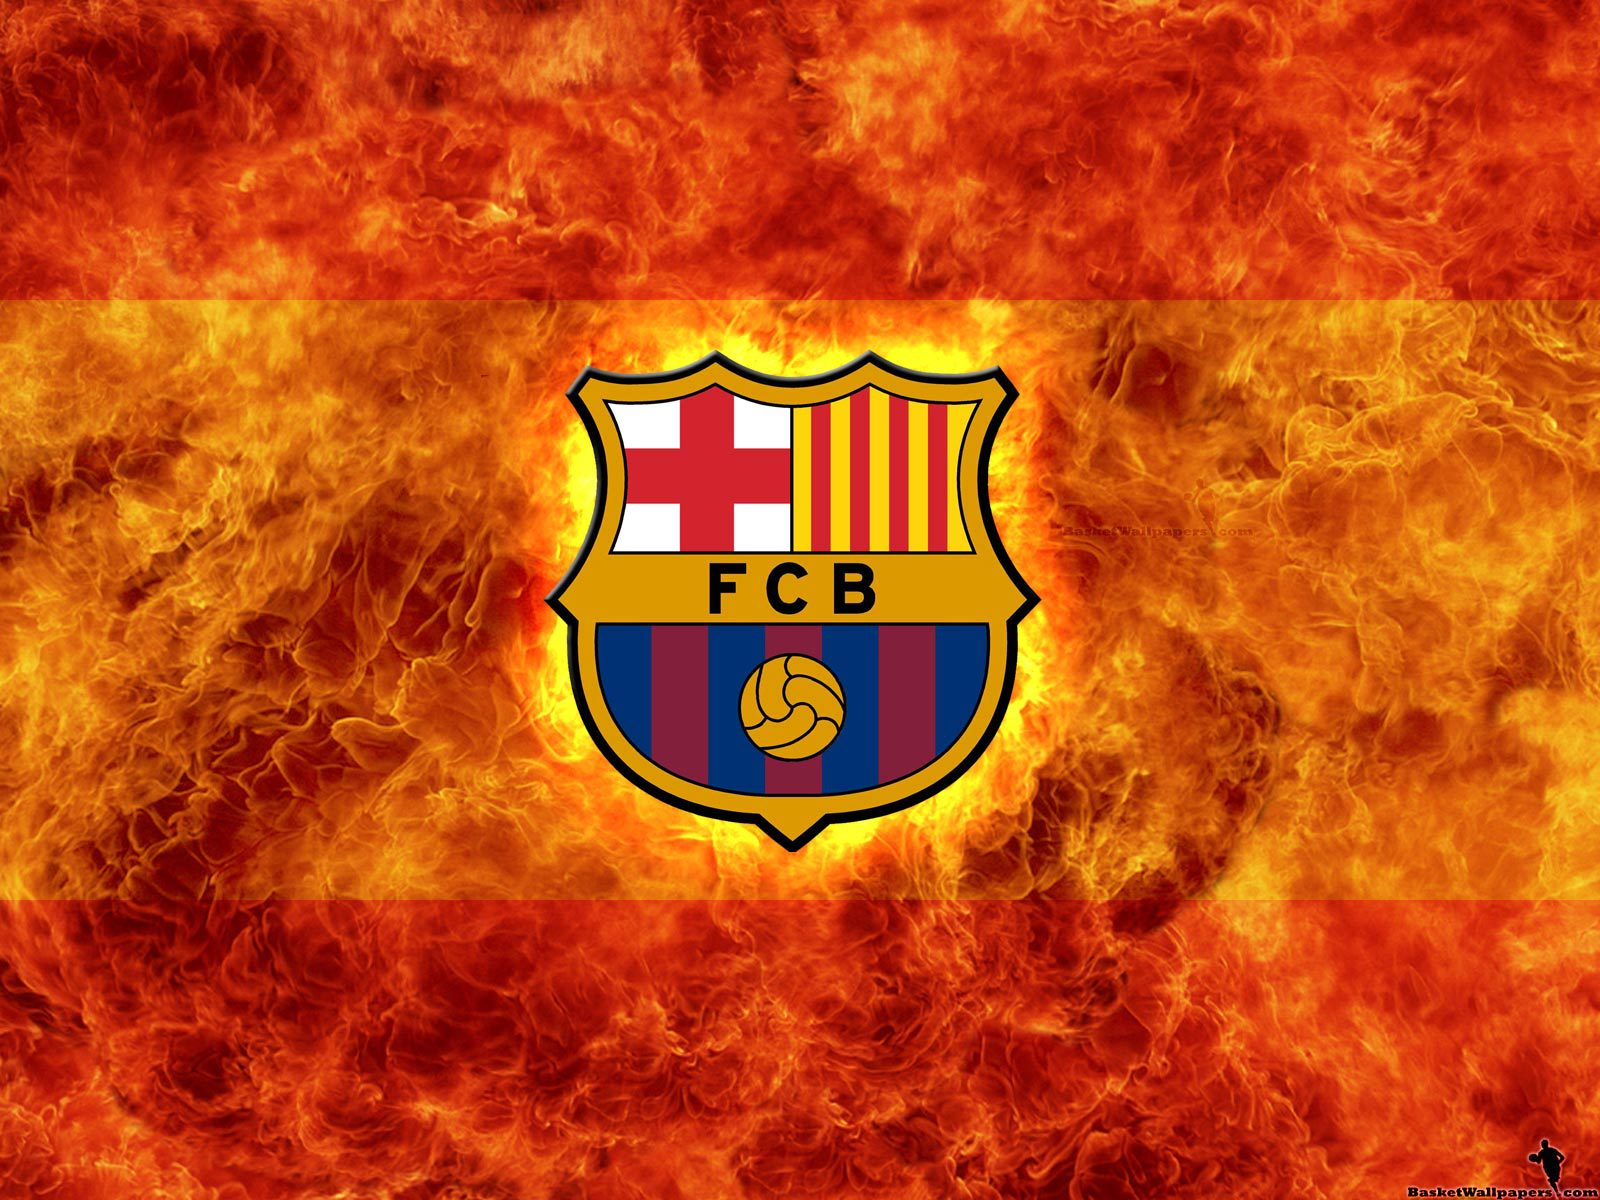 fc barcelona logo wallpaper download pixelstalk backgrounds barcelona wallpaper 1600x1200 avante biz